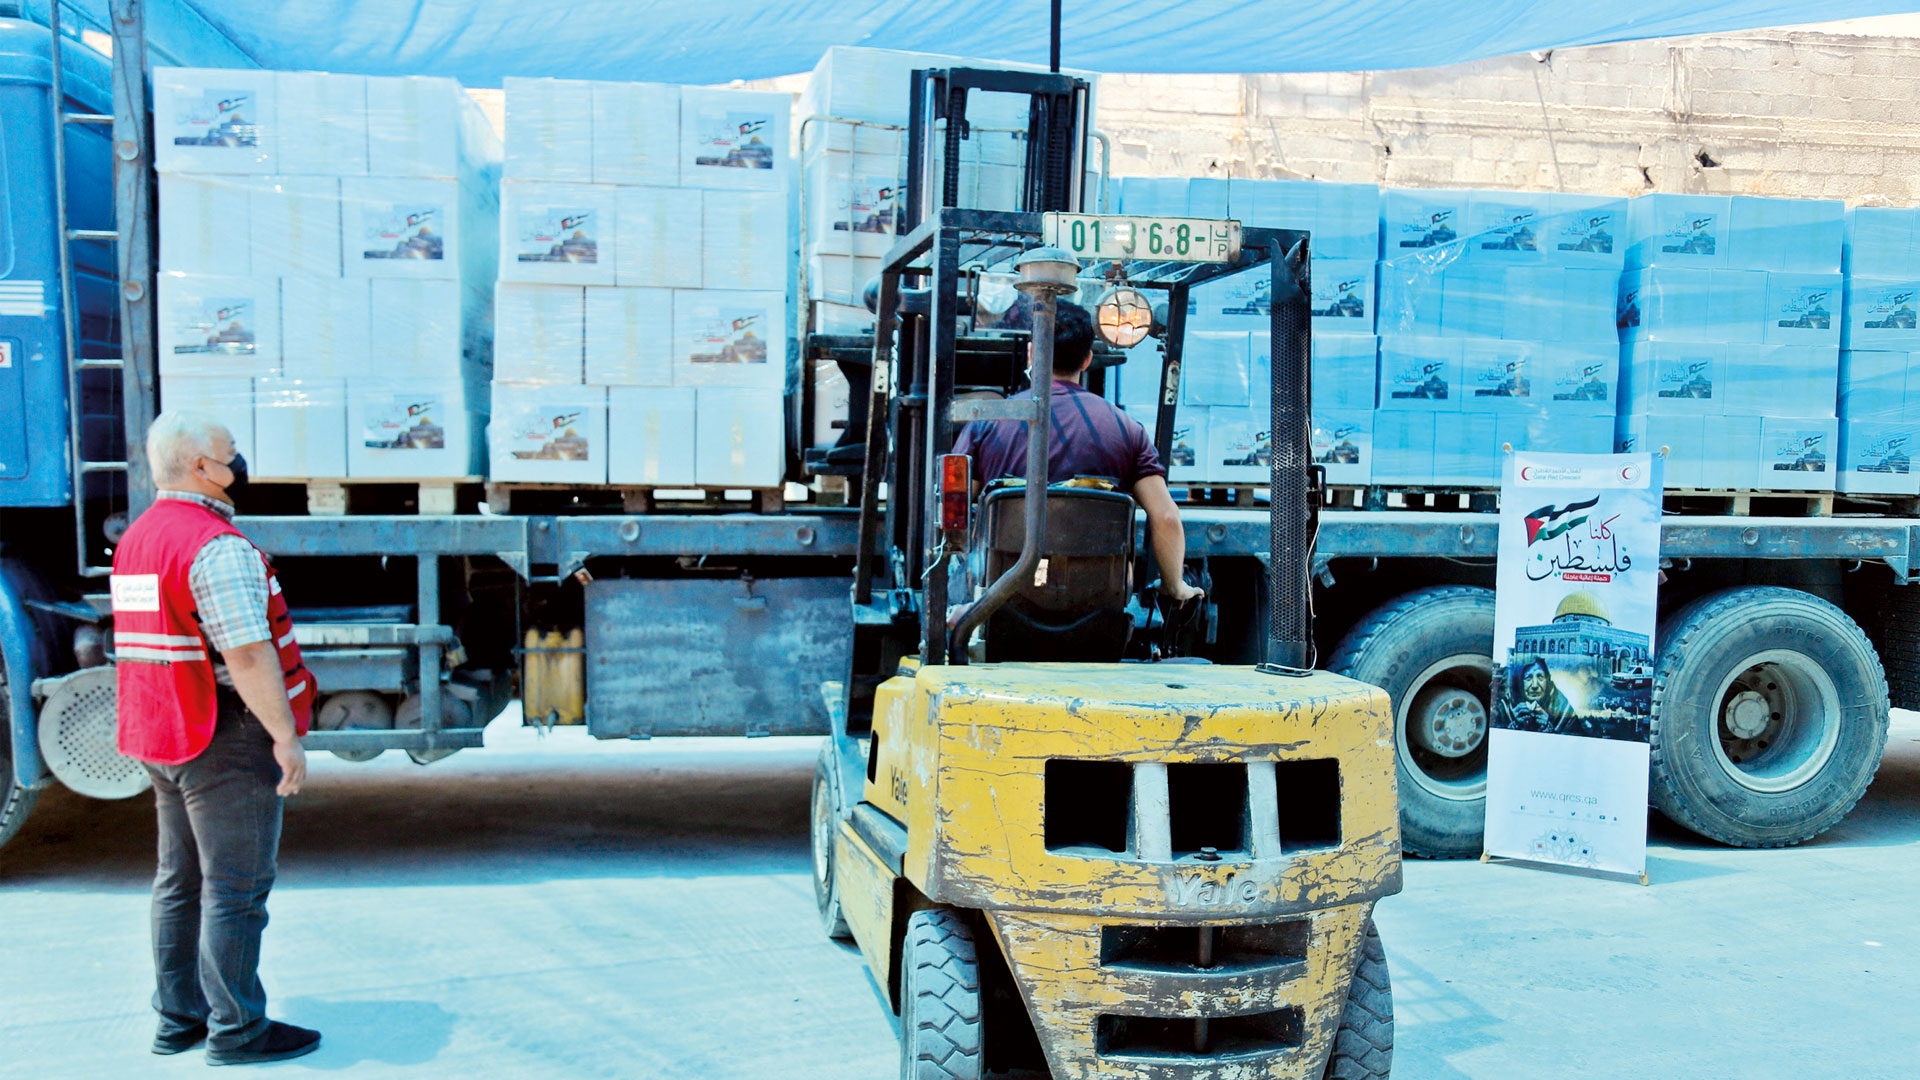 QRCS provides food and relief aid to the people of Gaza